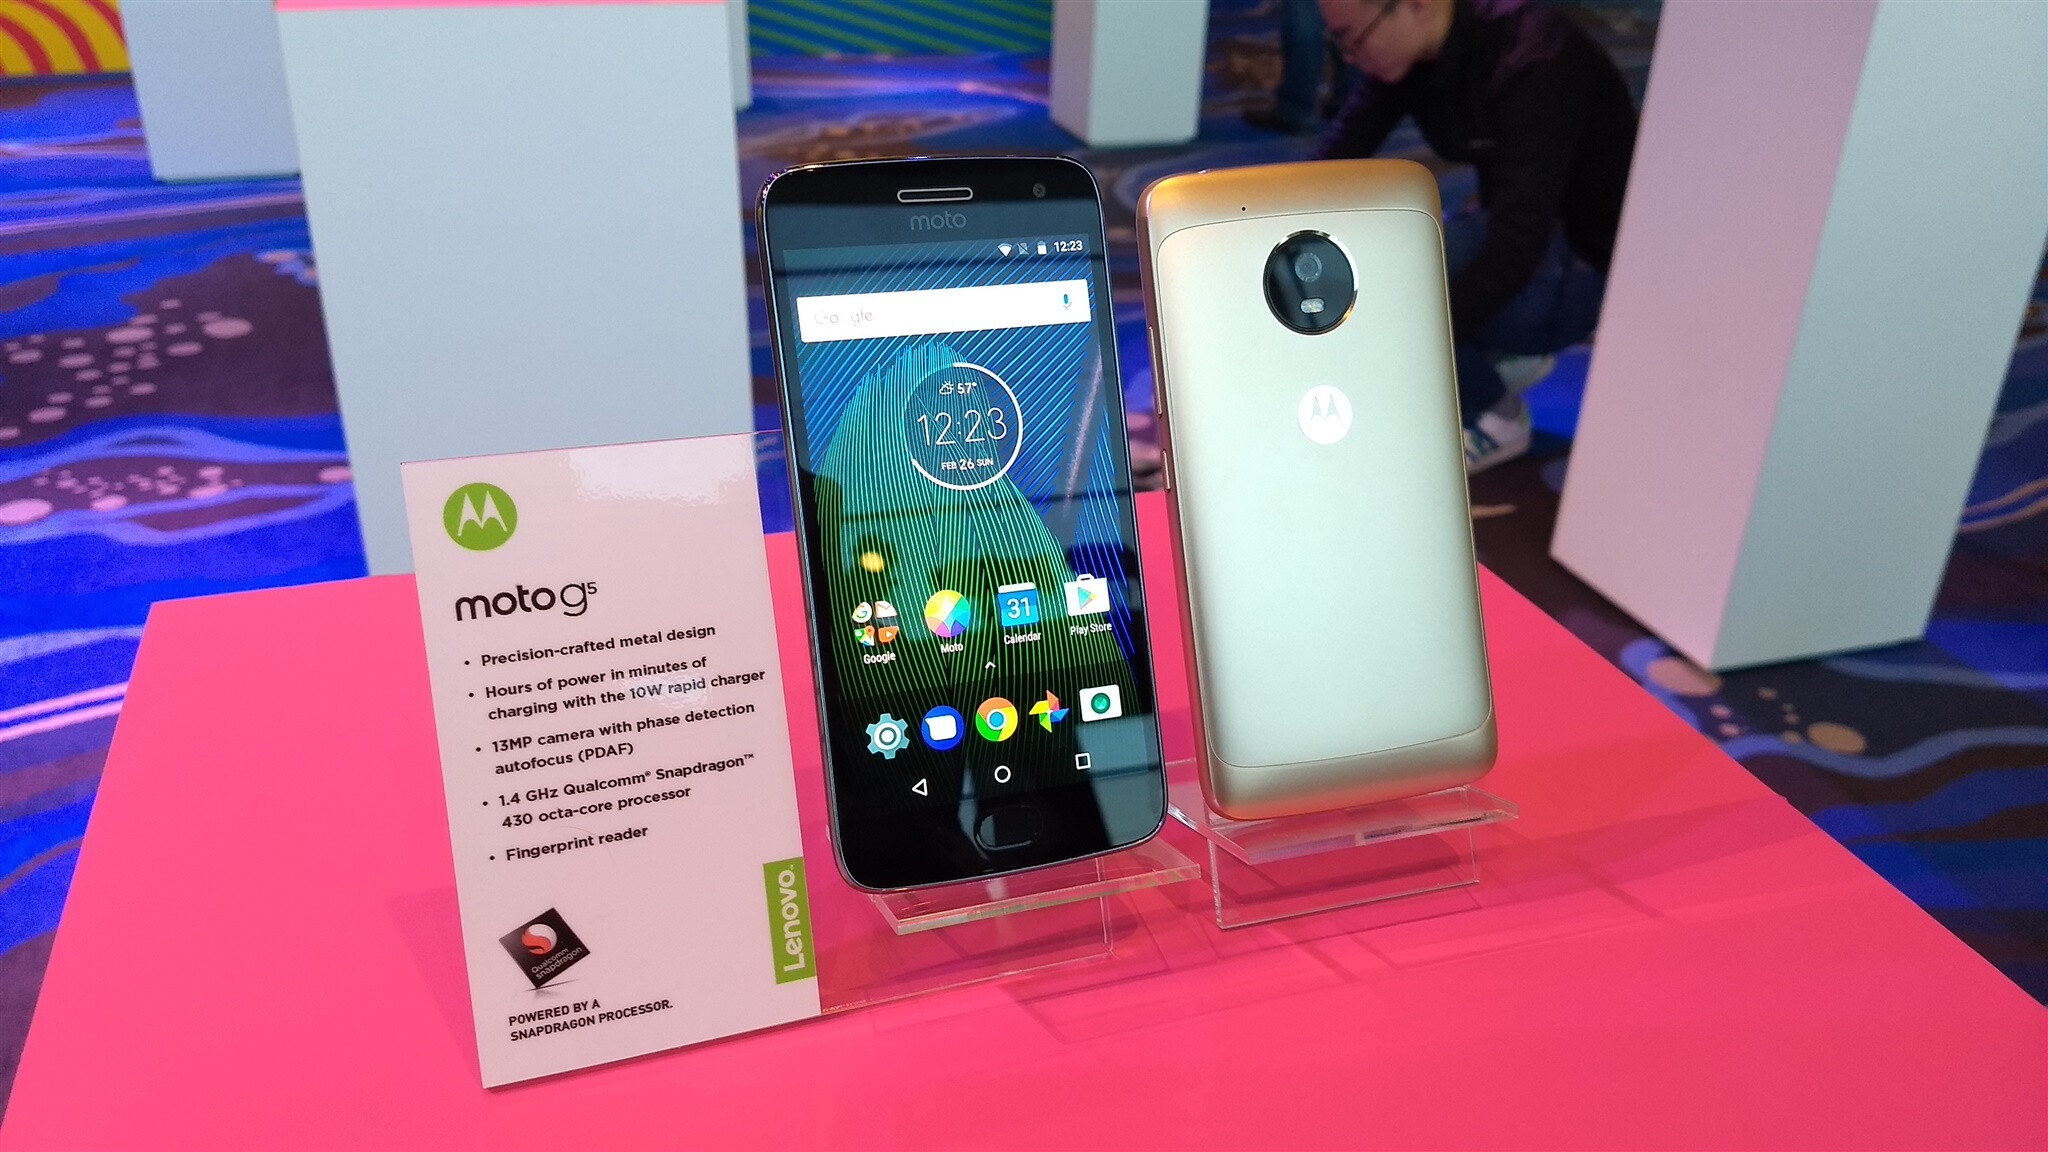 Here are our first camera samples from the Moto G5 Plus